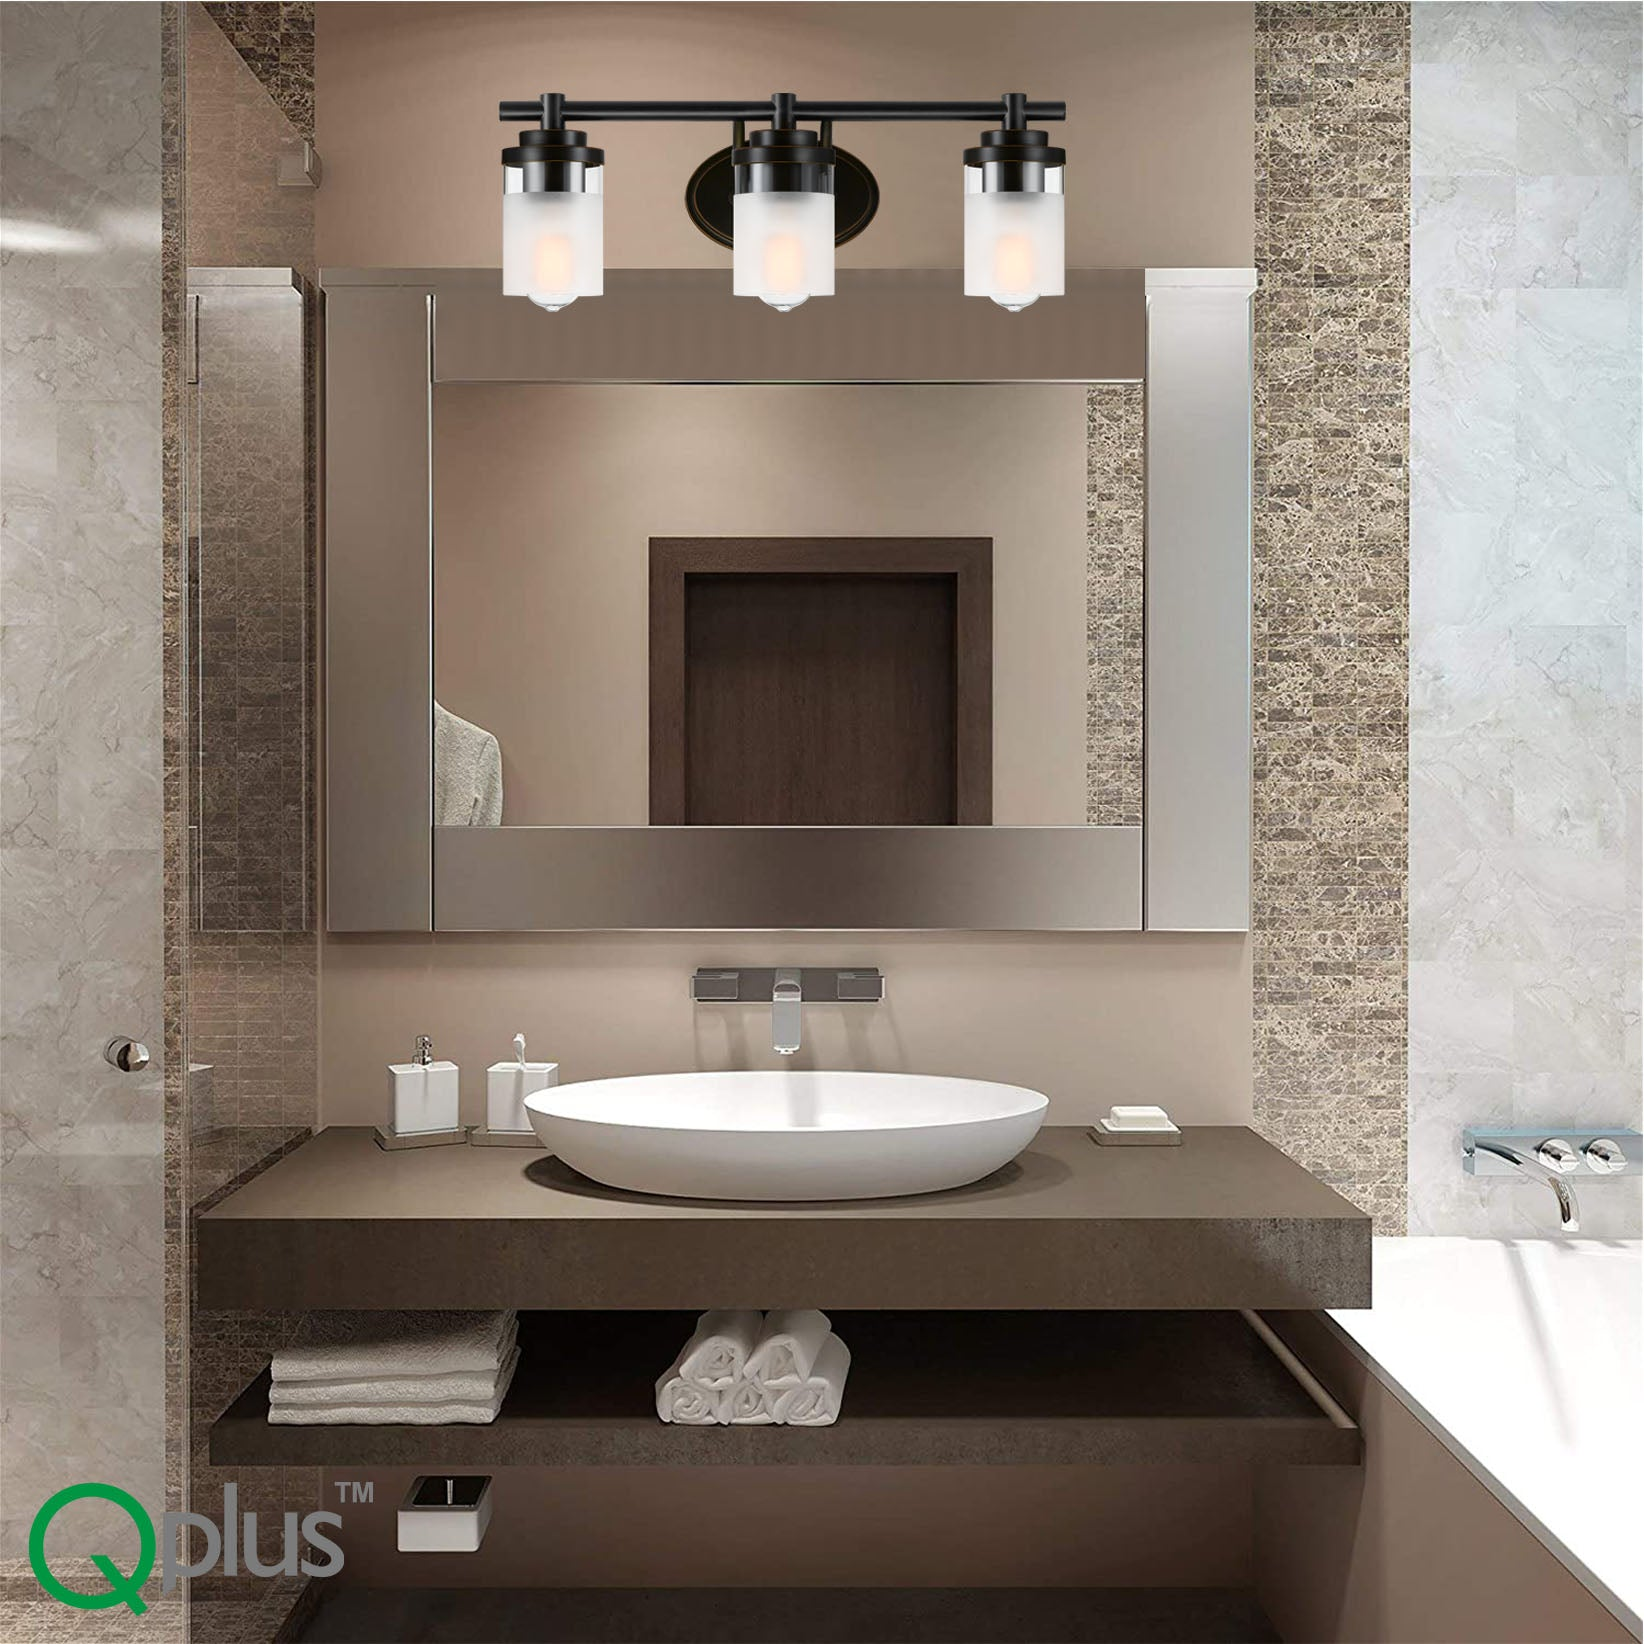 QPlus Bathroom Vanity Wall Light Fixture, 3 Lights with E26 Base & Clear, Frosted Glass shades (Sconces) - Bronze Finish + 3 A21 LED Bulbs Free